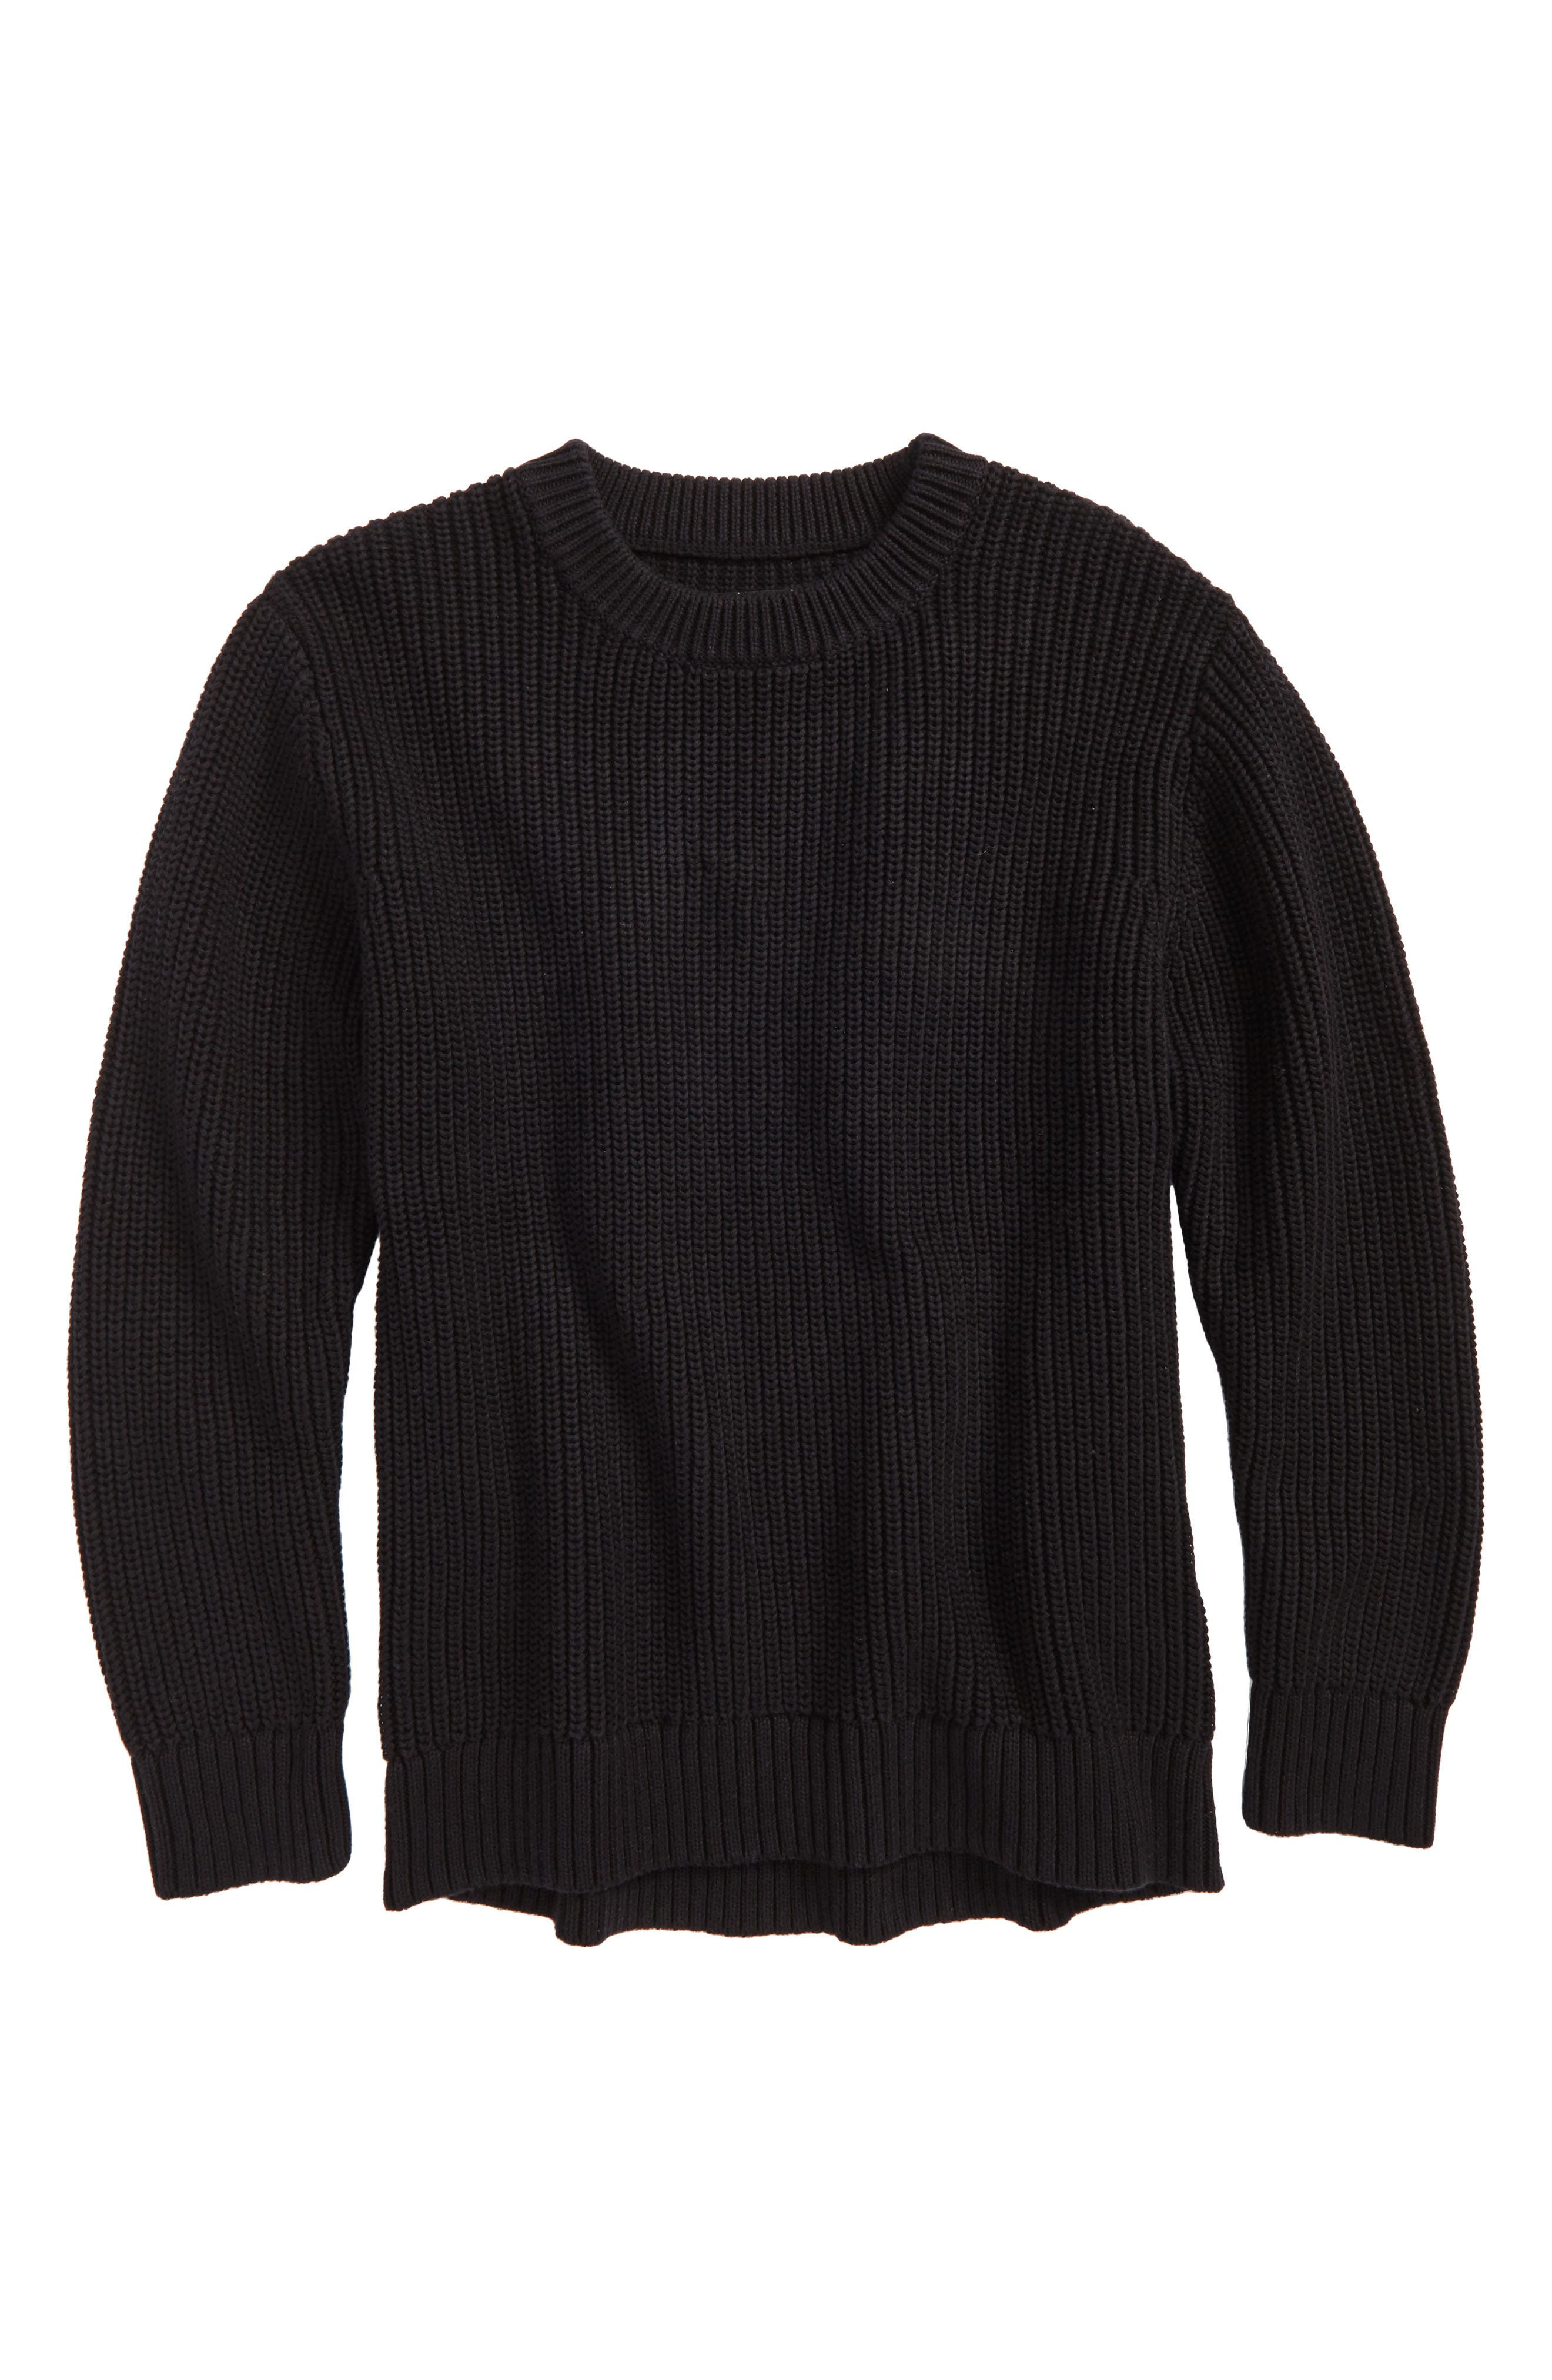 Main Image - Treasure & Bond Heavy Stitch Sweater (Big Boys)